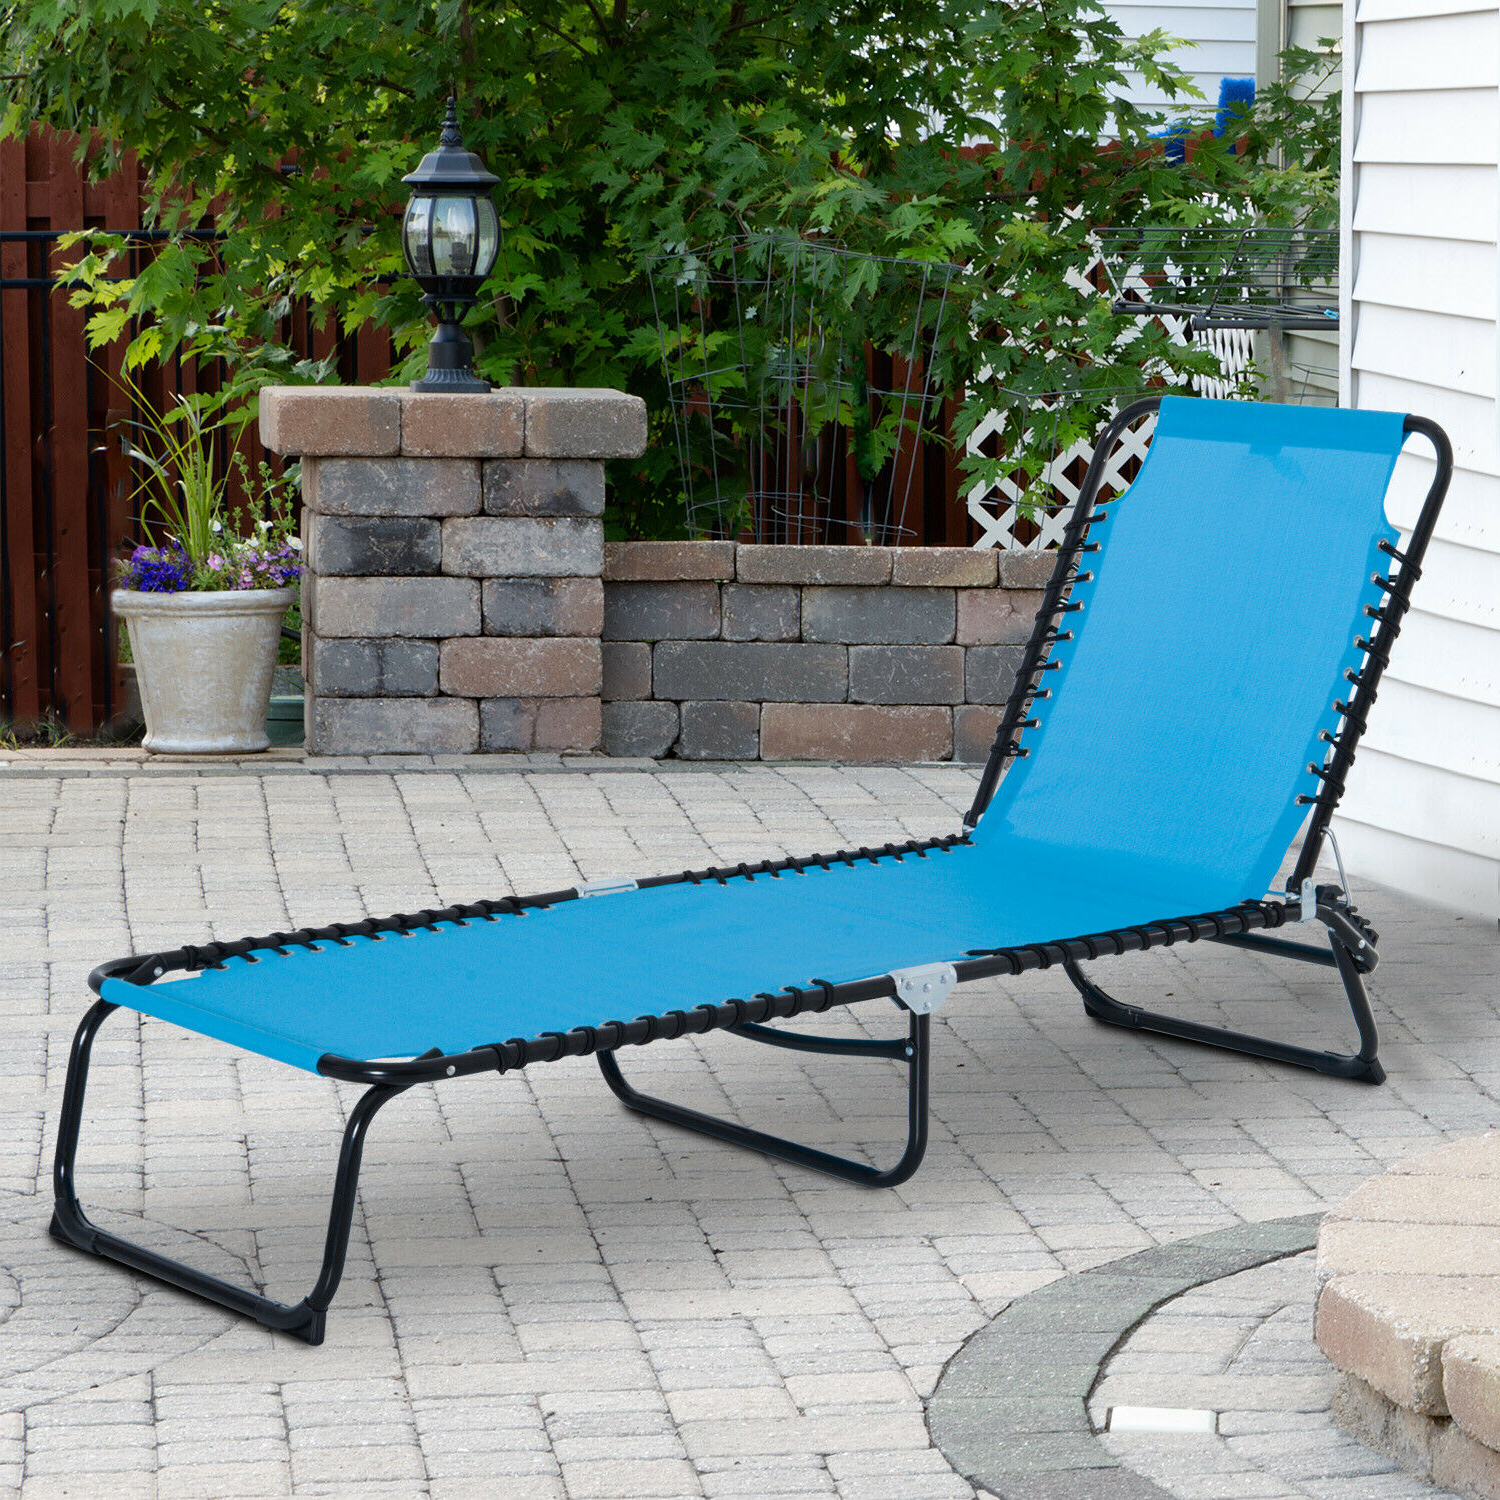 3 Position Portable Reclining Beach Chaise Lounge Adjustable Sleeping Light Blue Intended For Well Liked 3 Position Portable Folding Reclining Beach Chaise Lounges (Gallery 5 of 25)